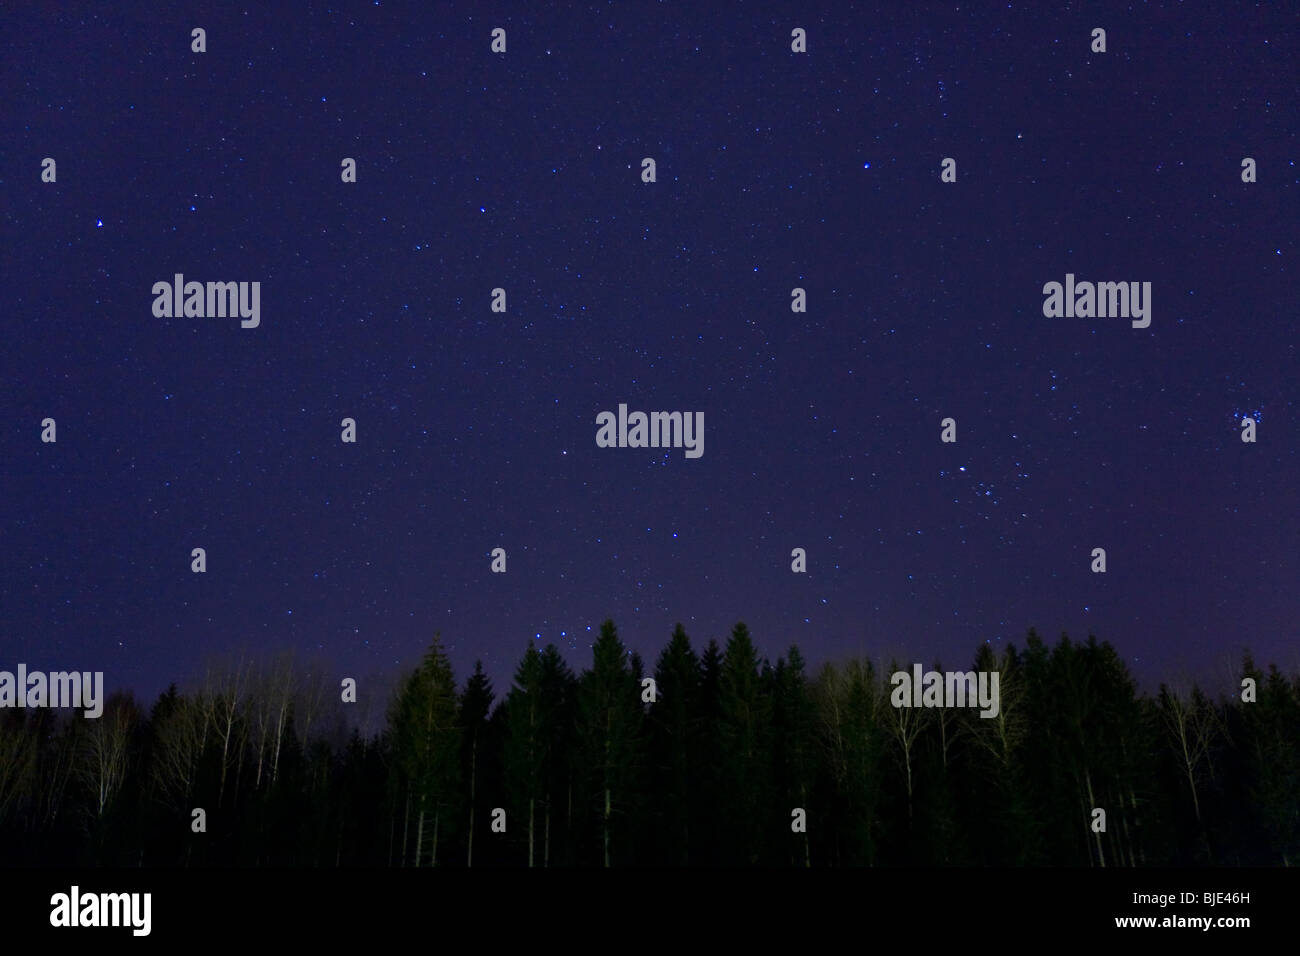 Stars on a clear, dark blue, night sky. Silhuette of woods in the bottom. - Stock Image